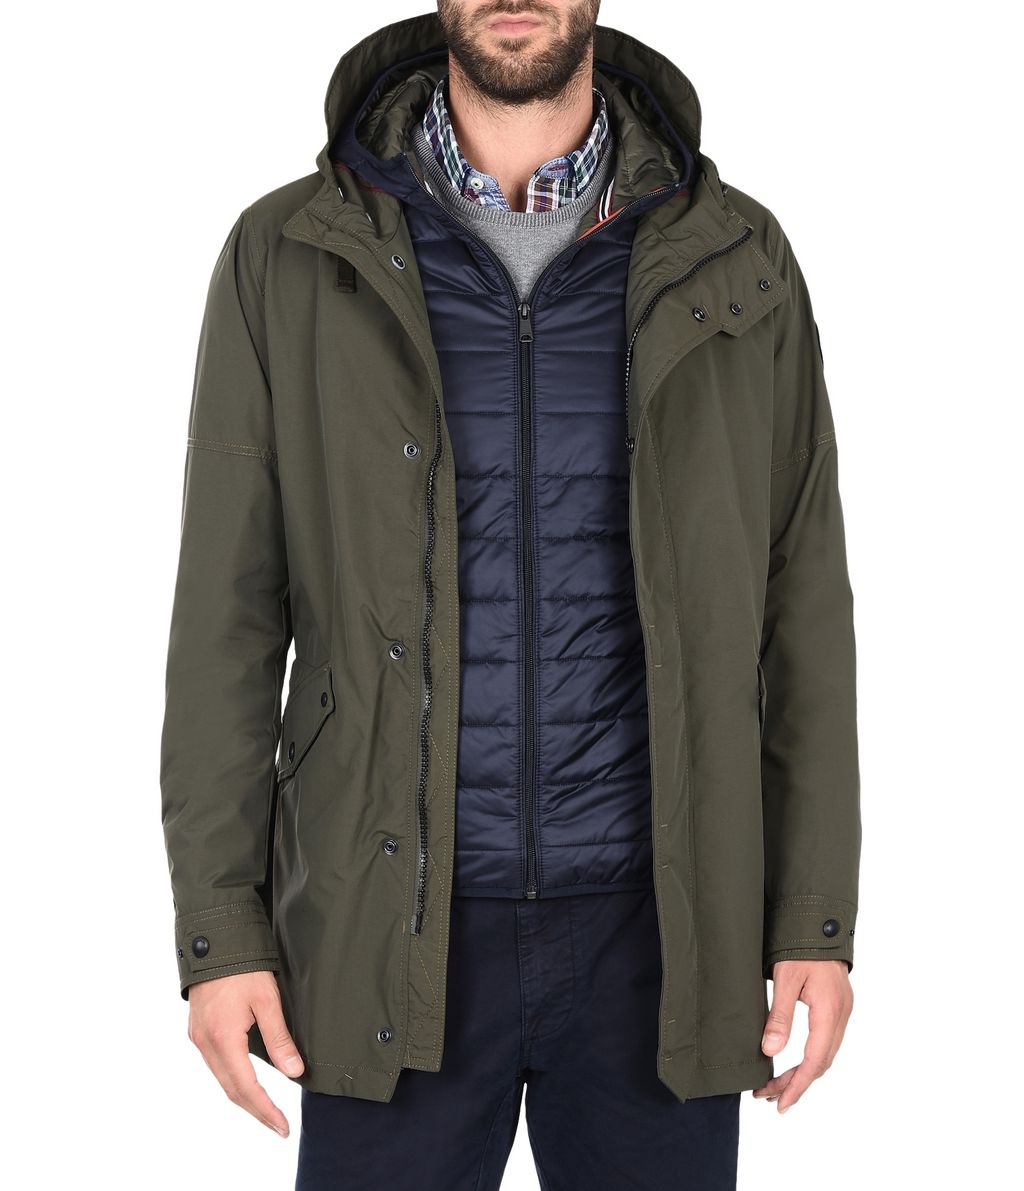 NAPAPIJRI ANNONAY 3IN1 MAN PARKA,MILITARY GREEN